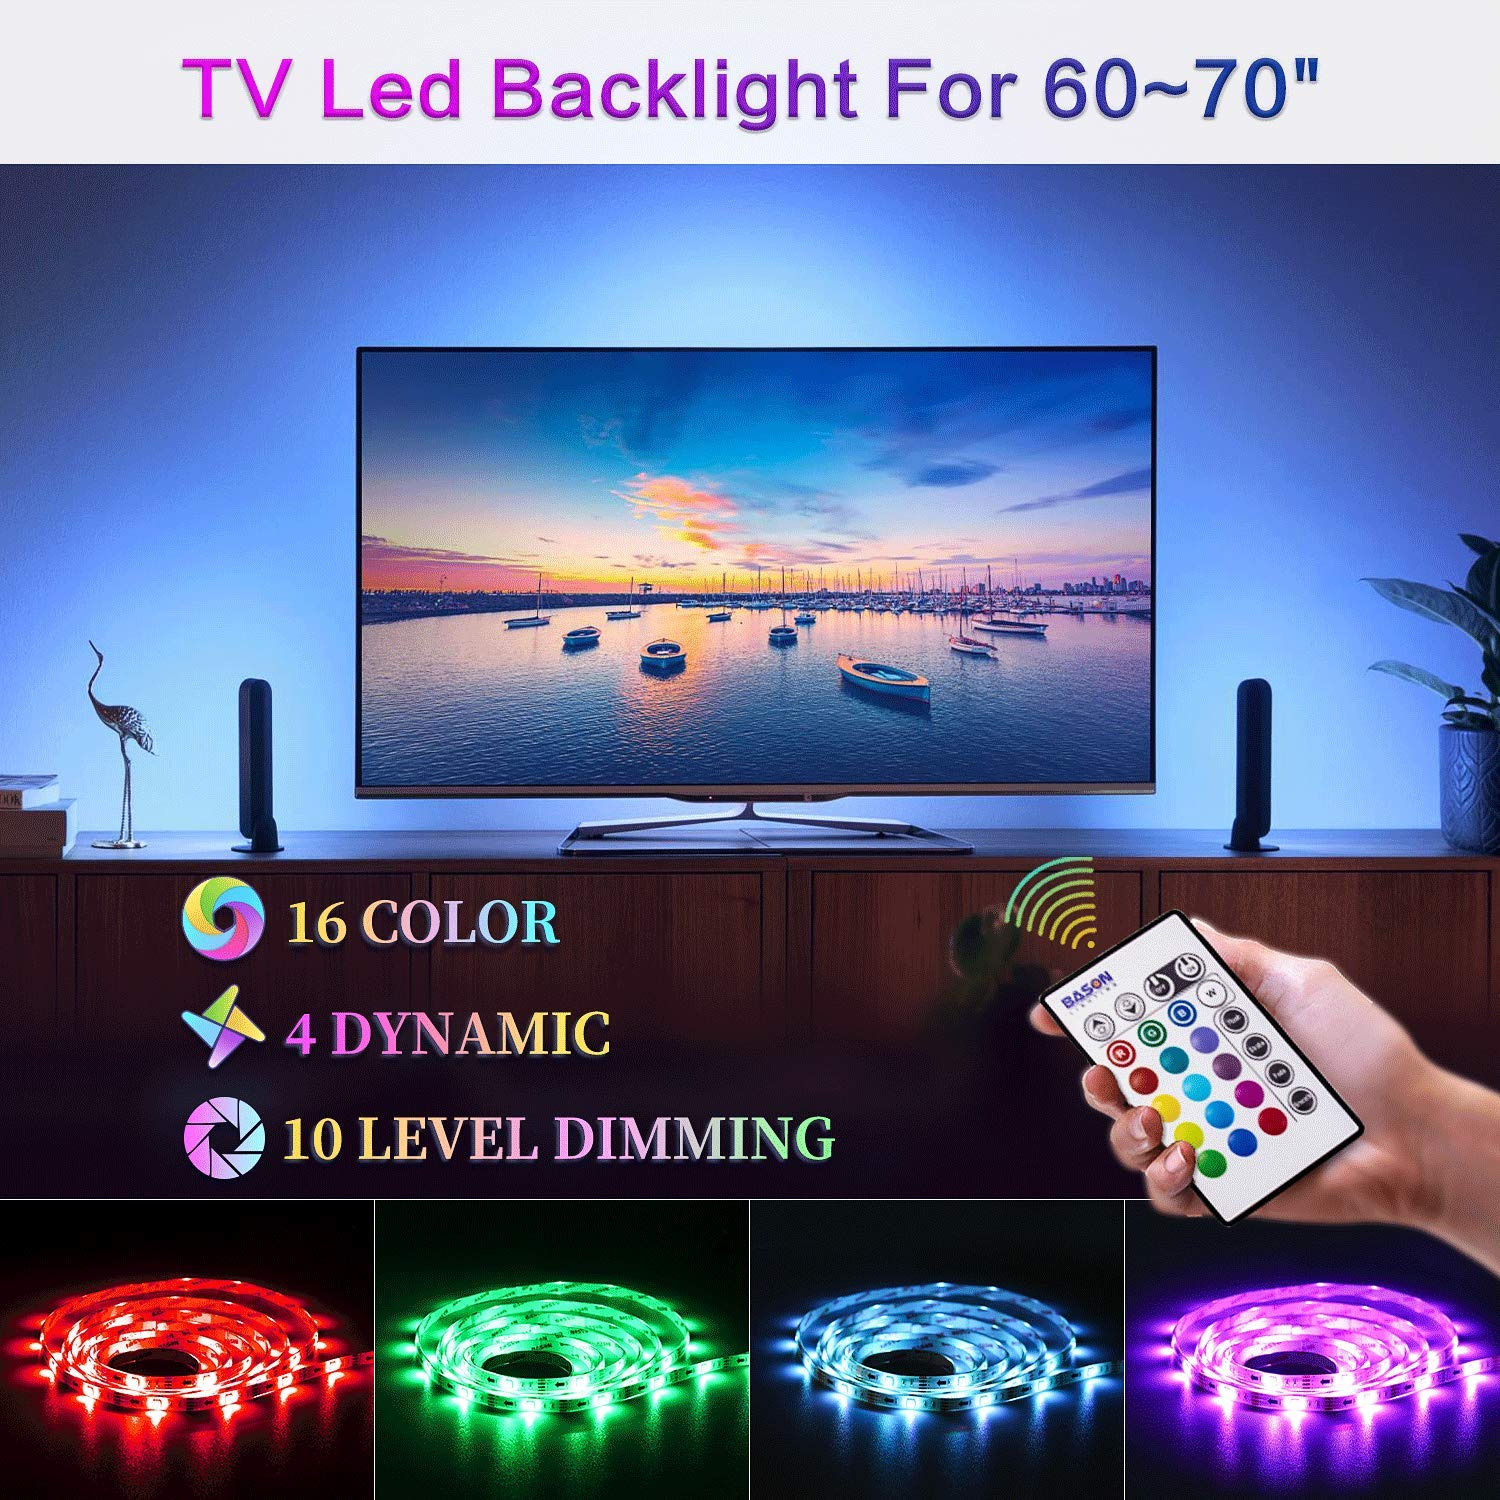 Bason Led Strip Lights for 60-70'' HDTV/Wall Mount TV, USB TV Led Backlight with Remote Control, 13.09ft Led Strips TV Bias Lighting for Entertainment Center Room Decorations Home Movie Theater.